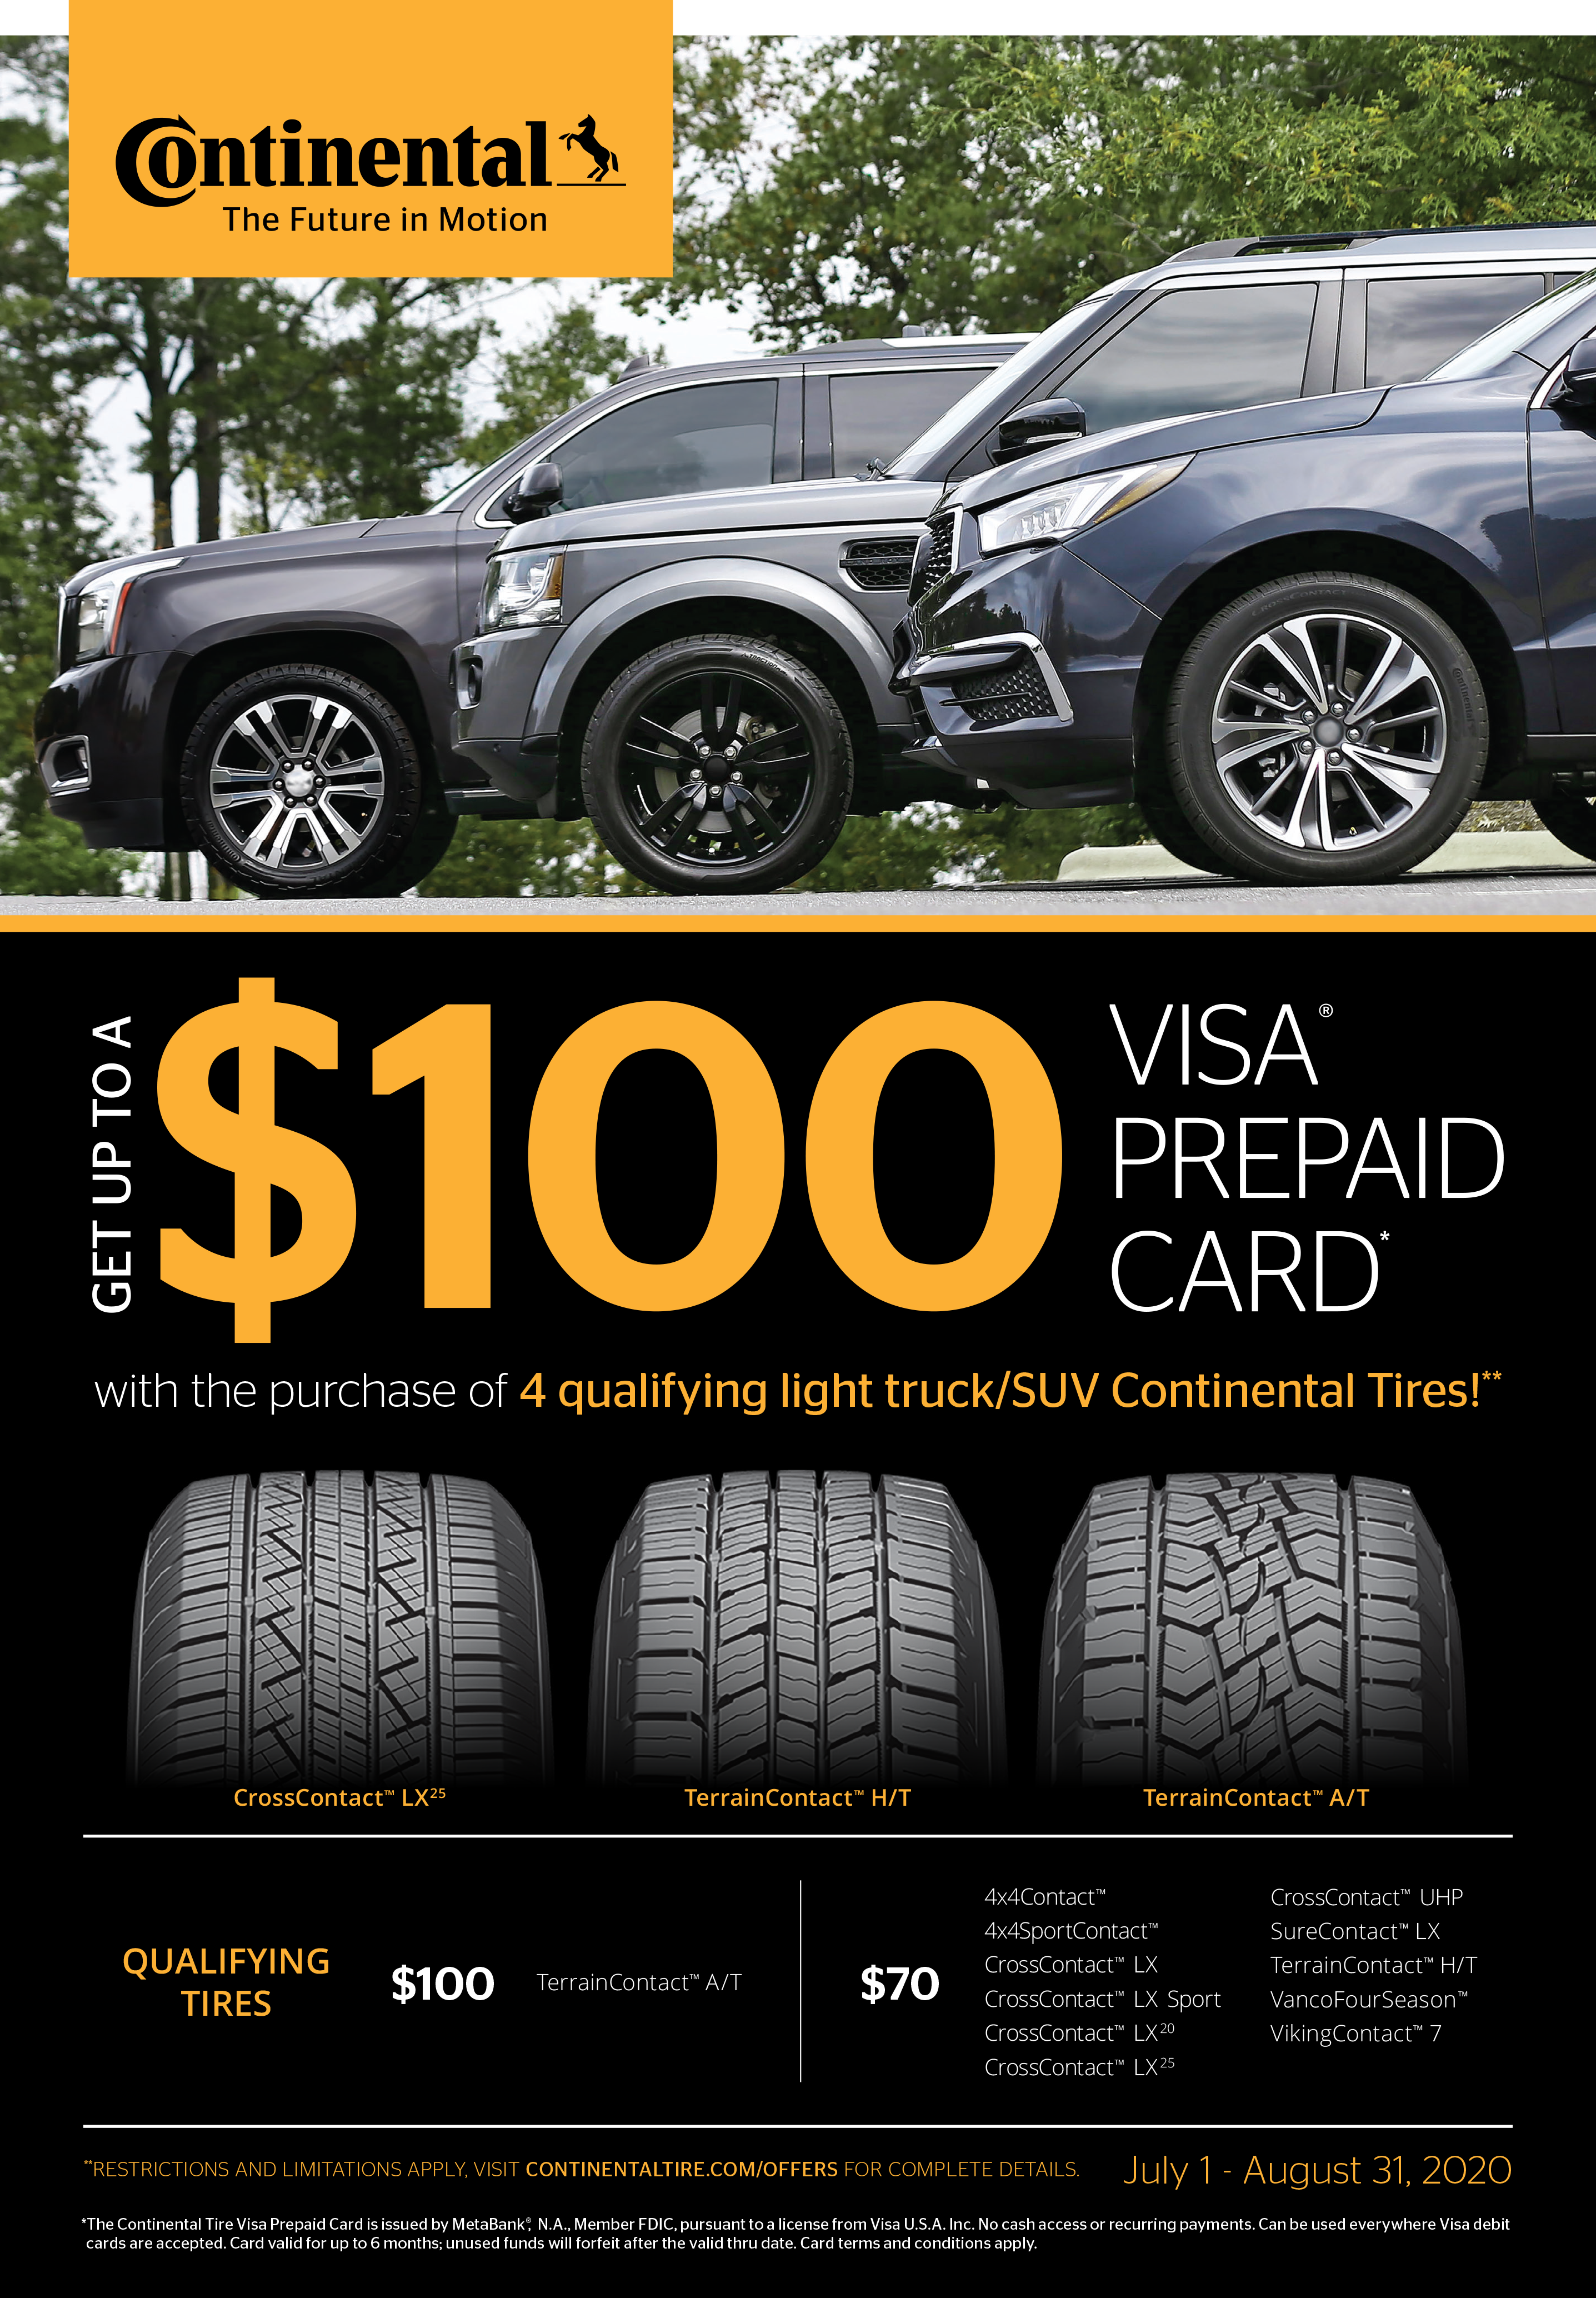 Get a $100 Visa Prepaid Card with the purchase of 4 qualifying light truck/SUV Continental Tires!